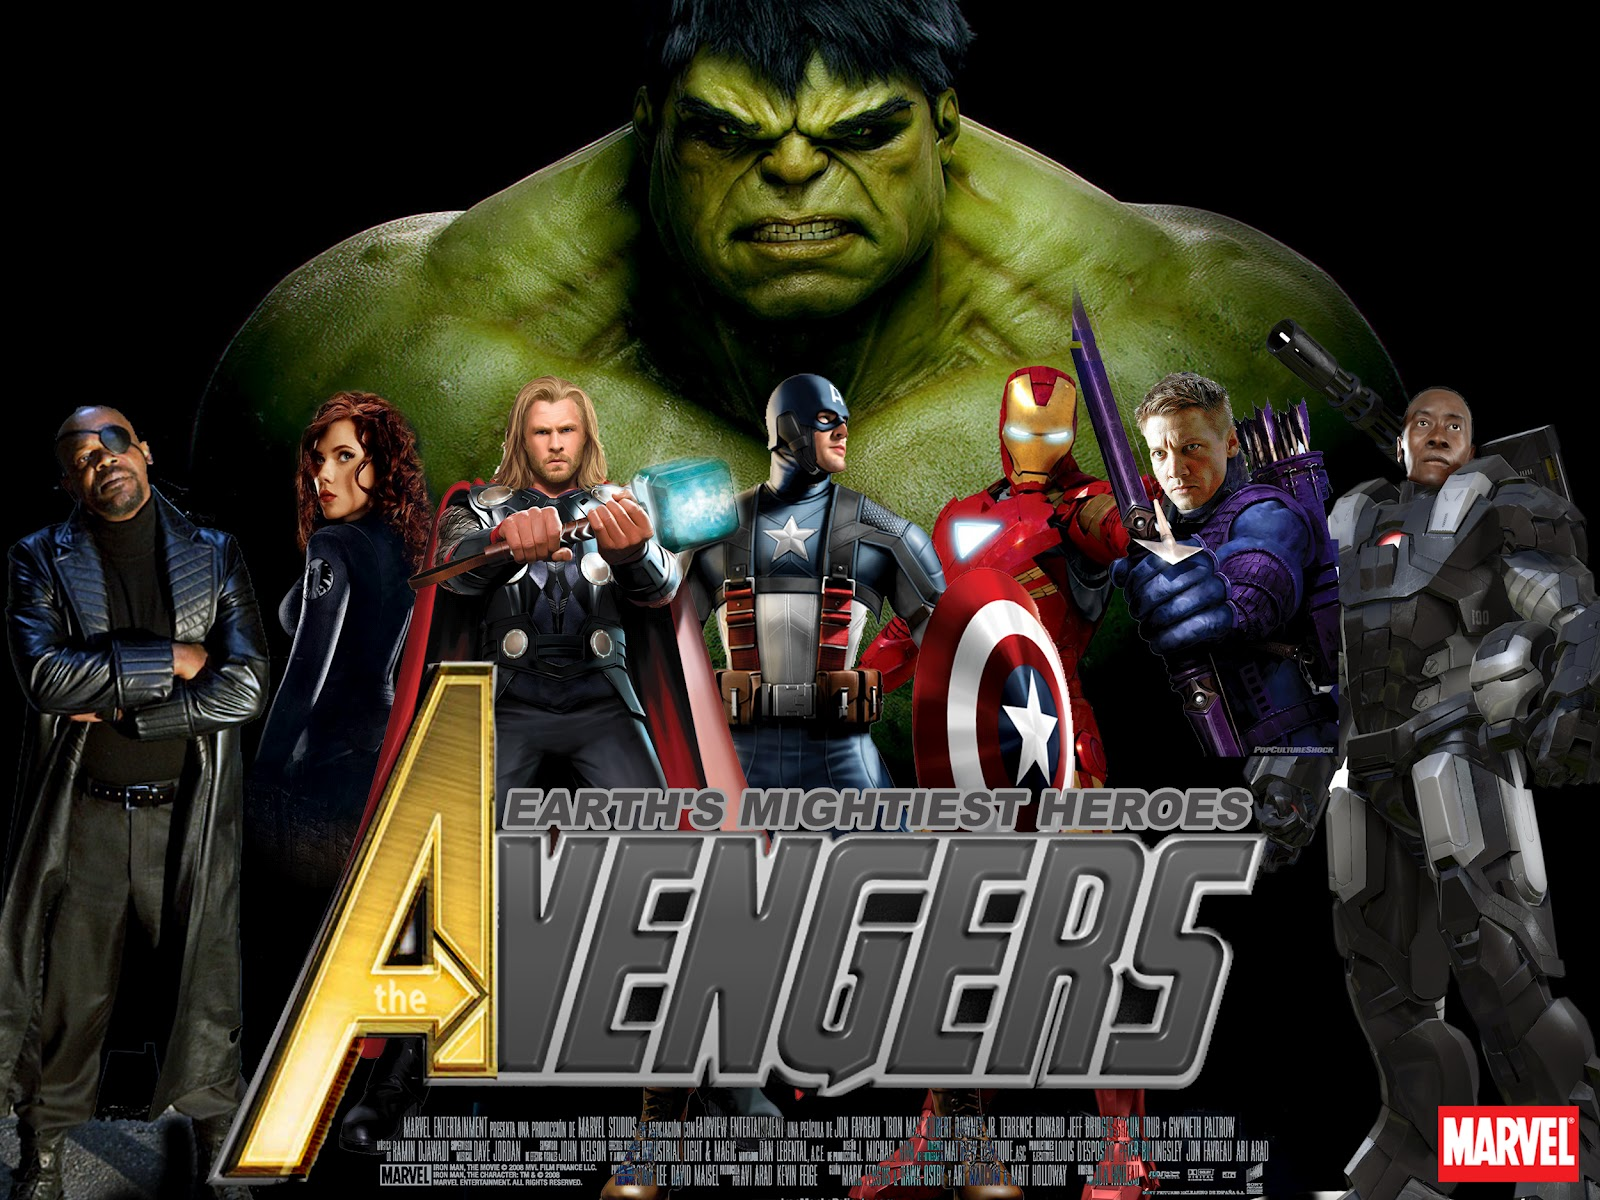 http://4.bp.blogspot.com/-2DaZmDuU_zk/T5wiWIIyDwI/AAAAAAAABFI/Qt3GFv7rwpA/s1600/The_Avengers_Movie_by_Alex4everdn.jpg